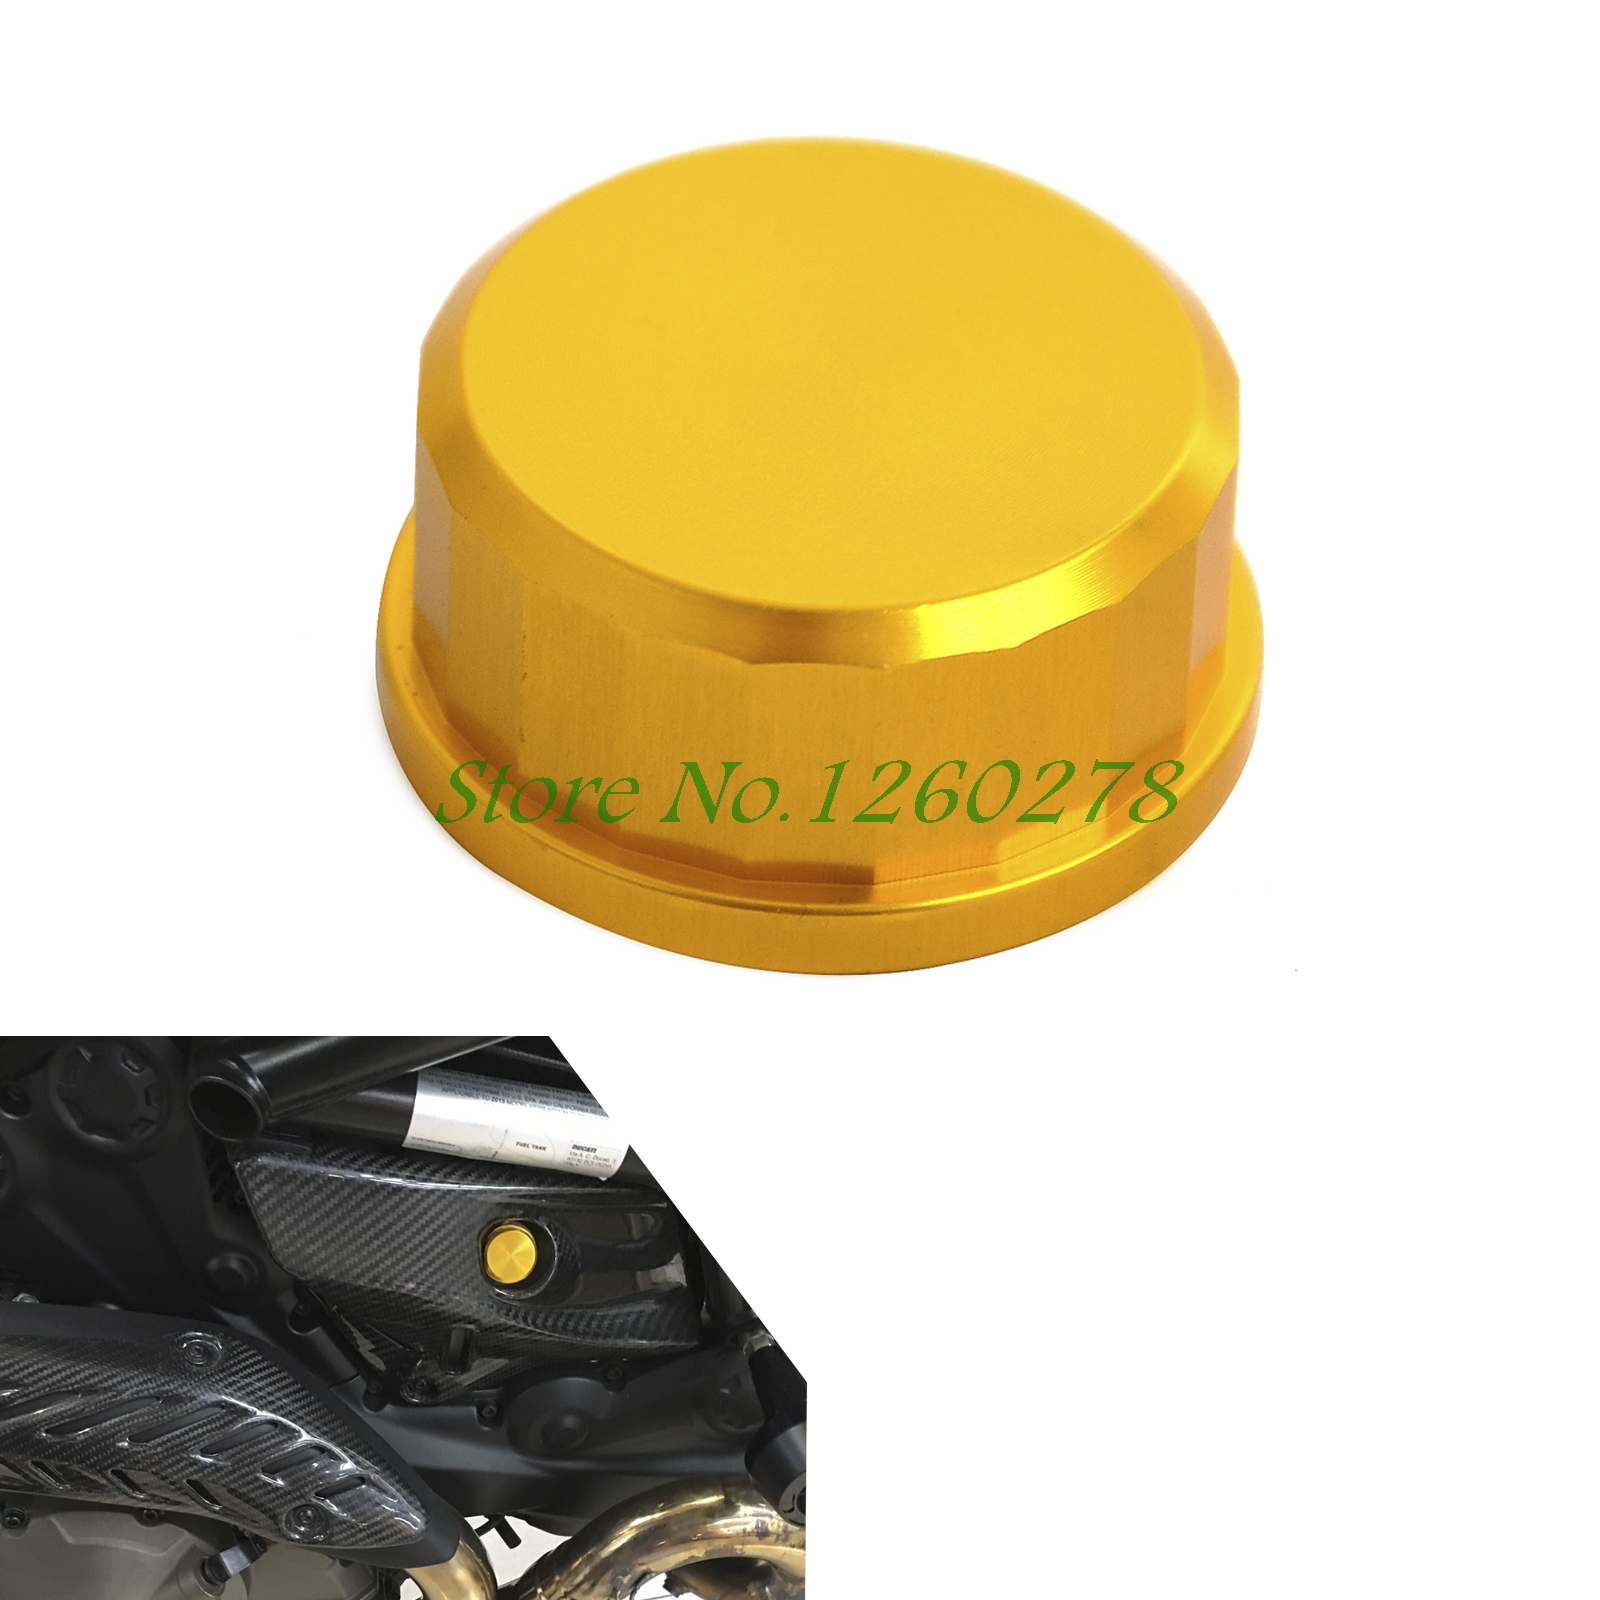 Motorcycle Water Tank Cap For Ducati 848 899 959 1199 1198 Diavel Carbon Hypermotard Monster 821 1200 Multistrada Streetfighter dmv motorcycle cnc m20 2 5 titanium magnetic engine oil filler cap for ducati diavel carbon 1199 1198 1098 848 evo 1200